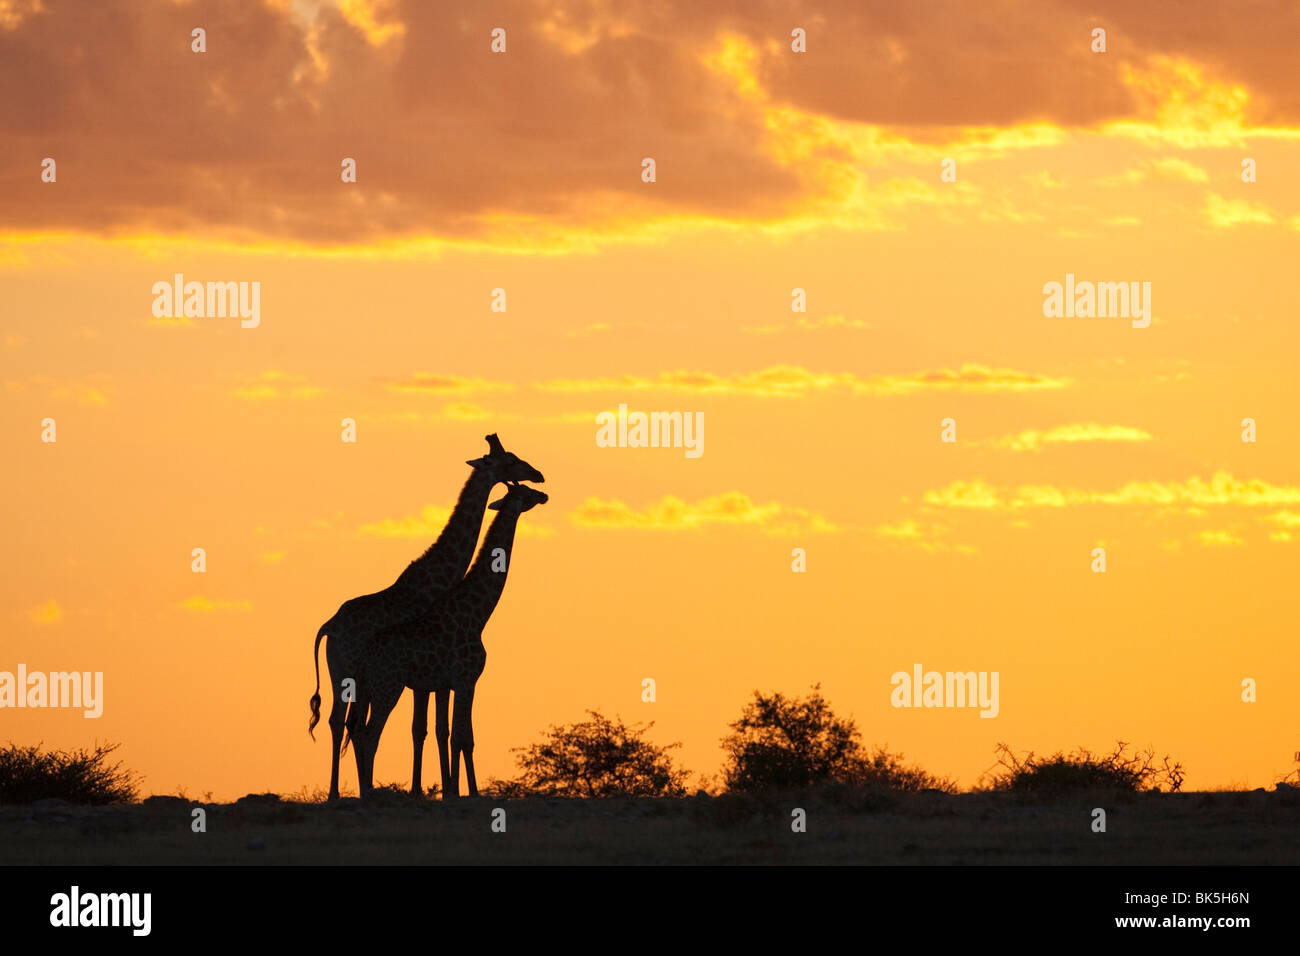 Giraffes (Giraffa camelopardalis), silhouetted at sunset, Etosha National Park, Namibia, Africa - Stock Image